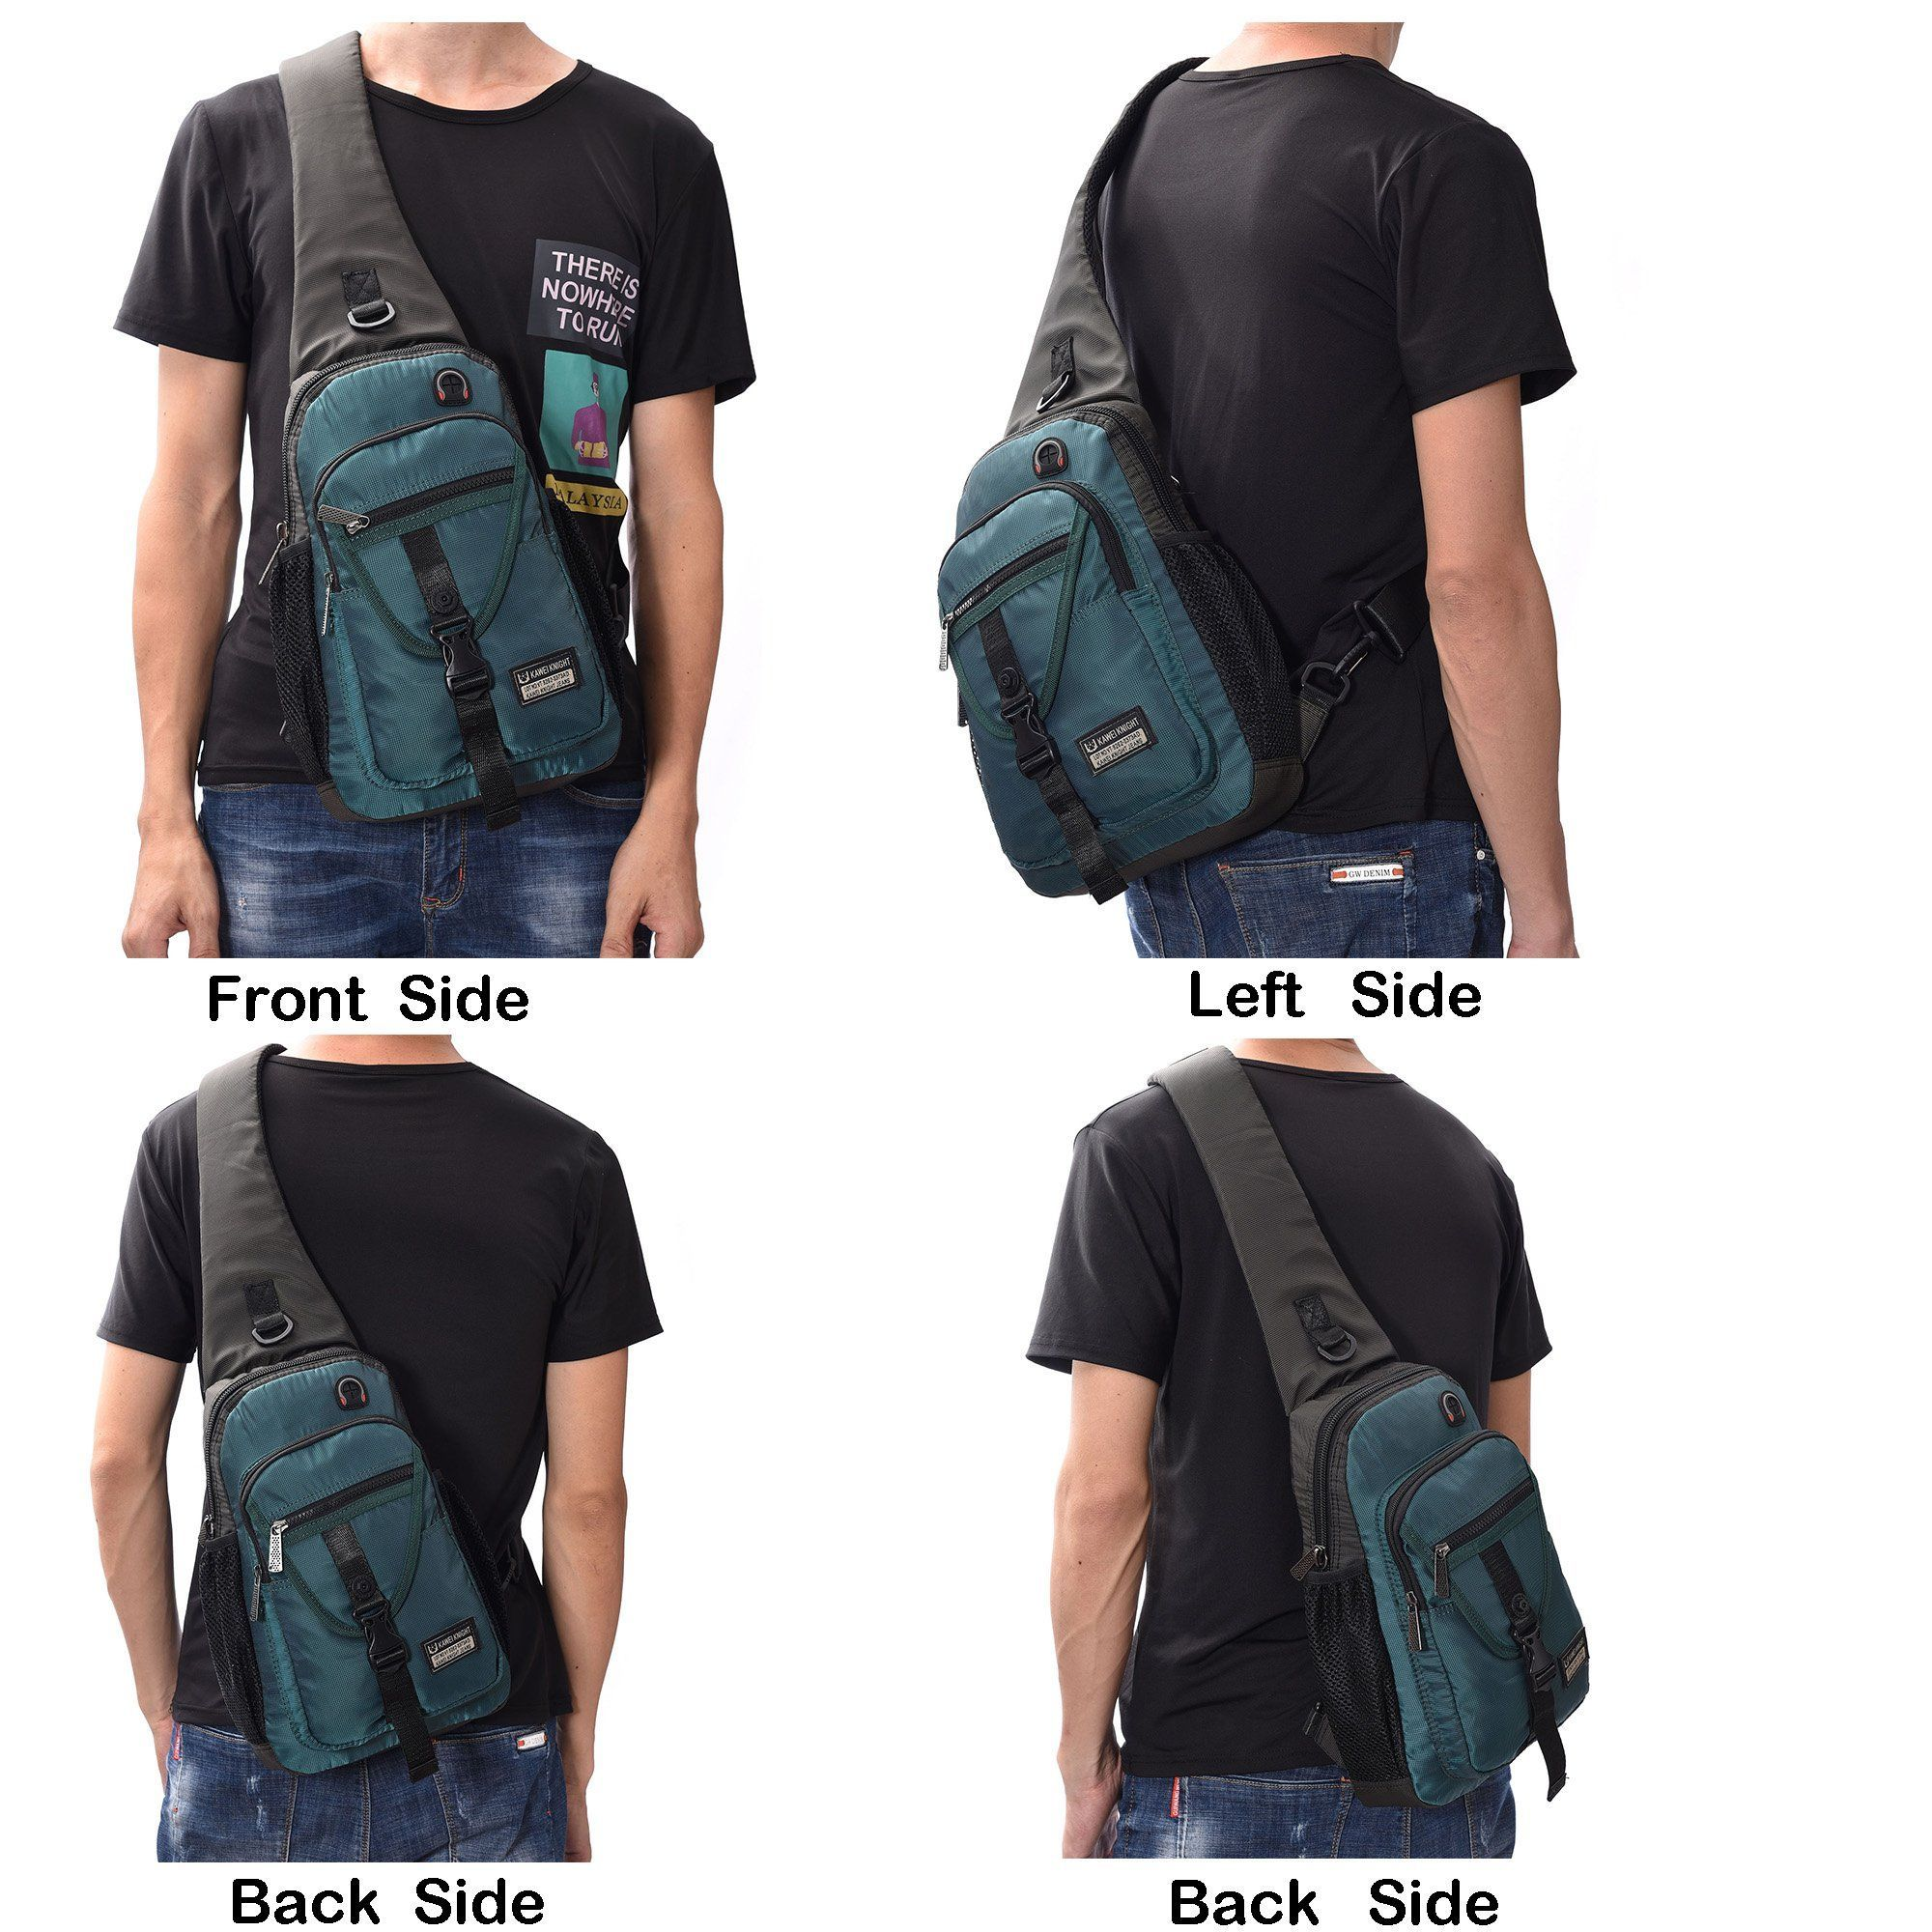 DDDH Sling Bags Chest Pack Triangle One Shoulder Crossbody Backpack for  Outdoor Camping Hiking Man Women 283d63c86b